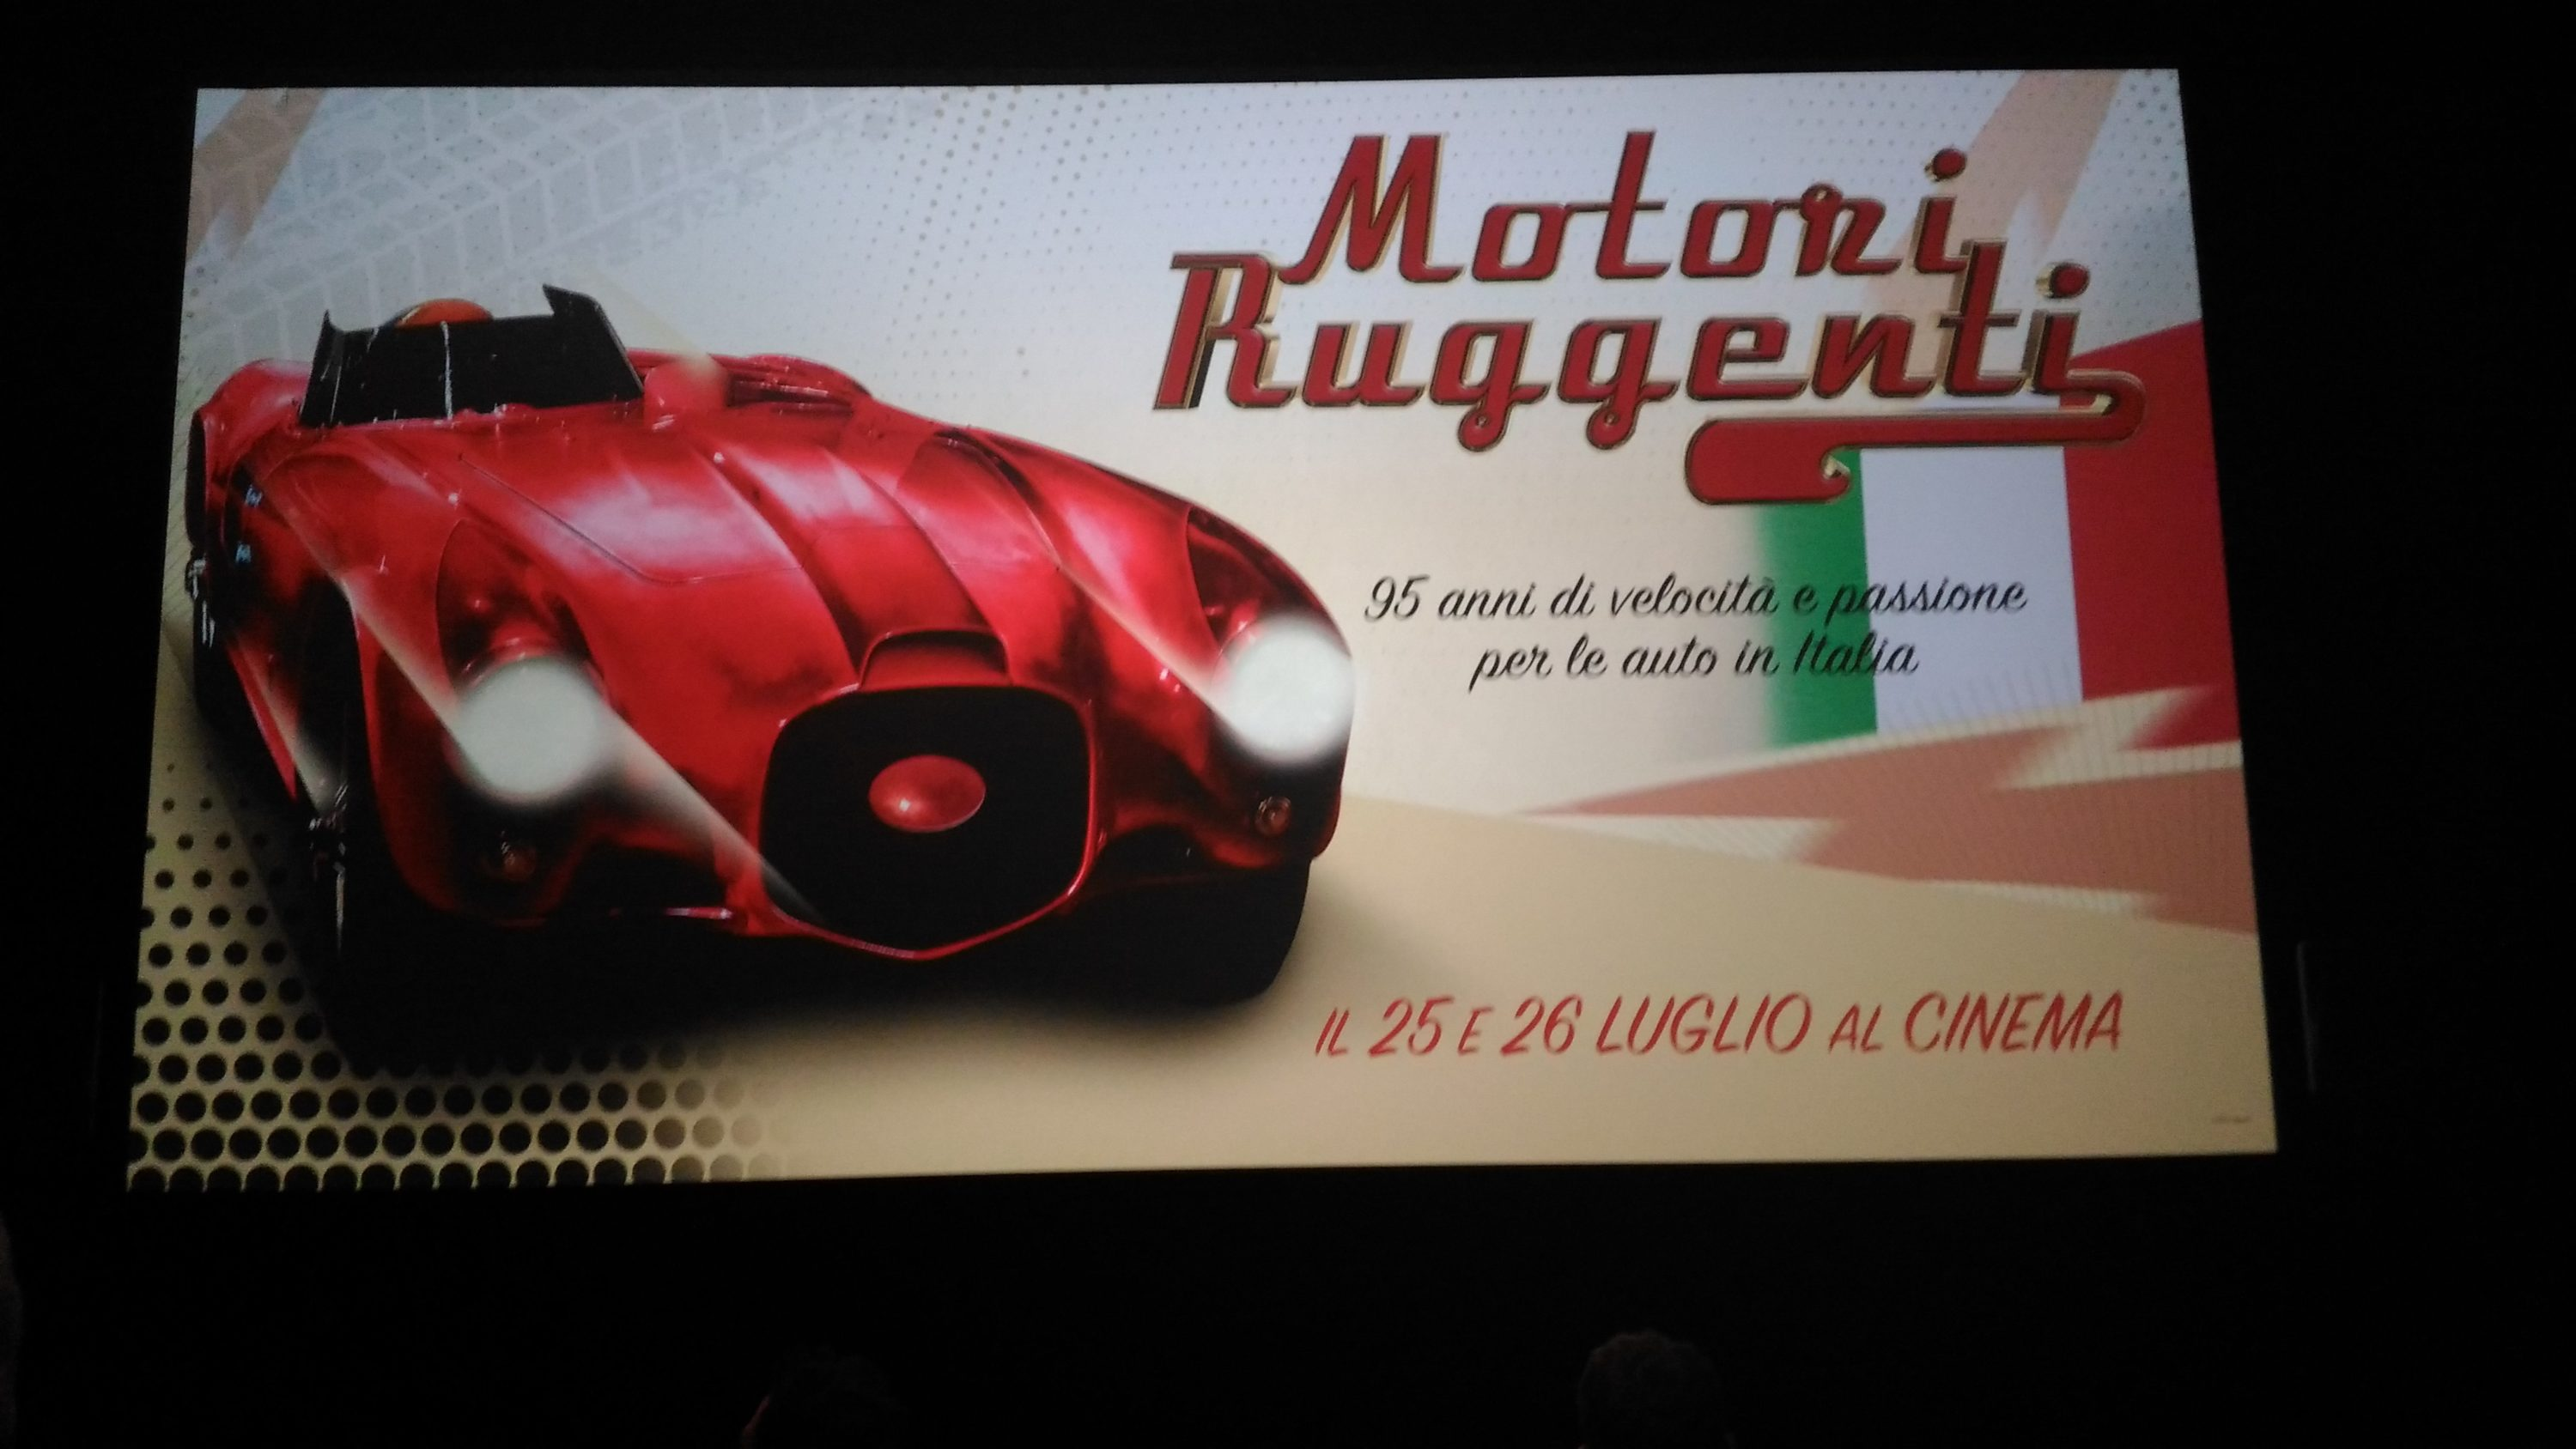 MOTORI RUGGENTI | L'inno all'automobile italiana, tra storia e motori